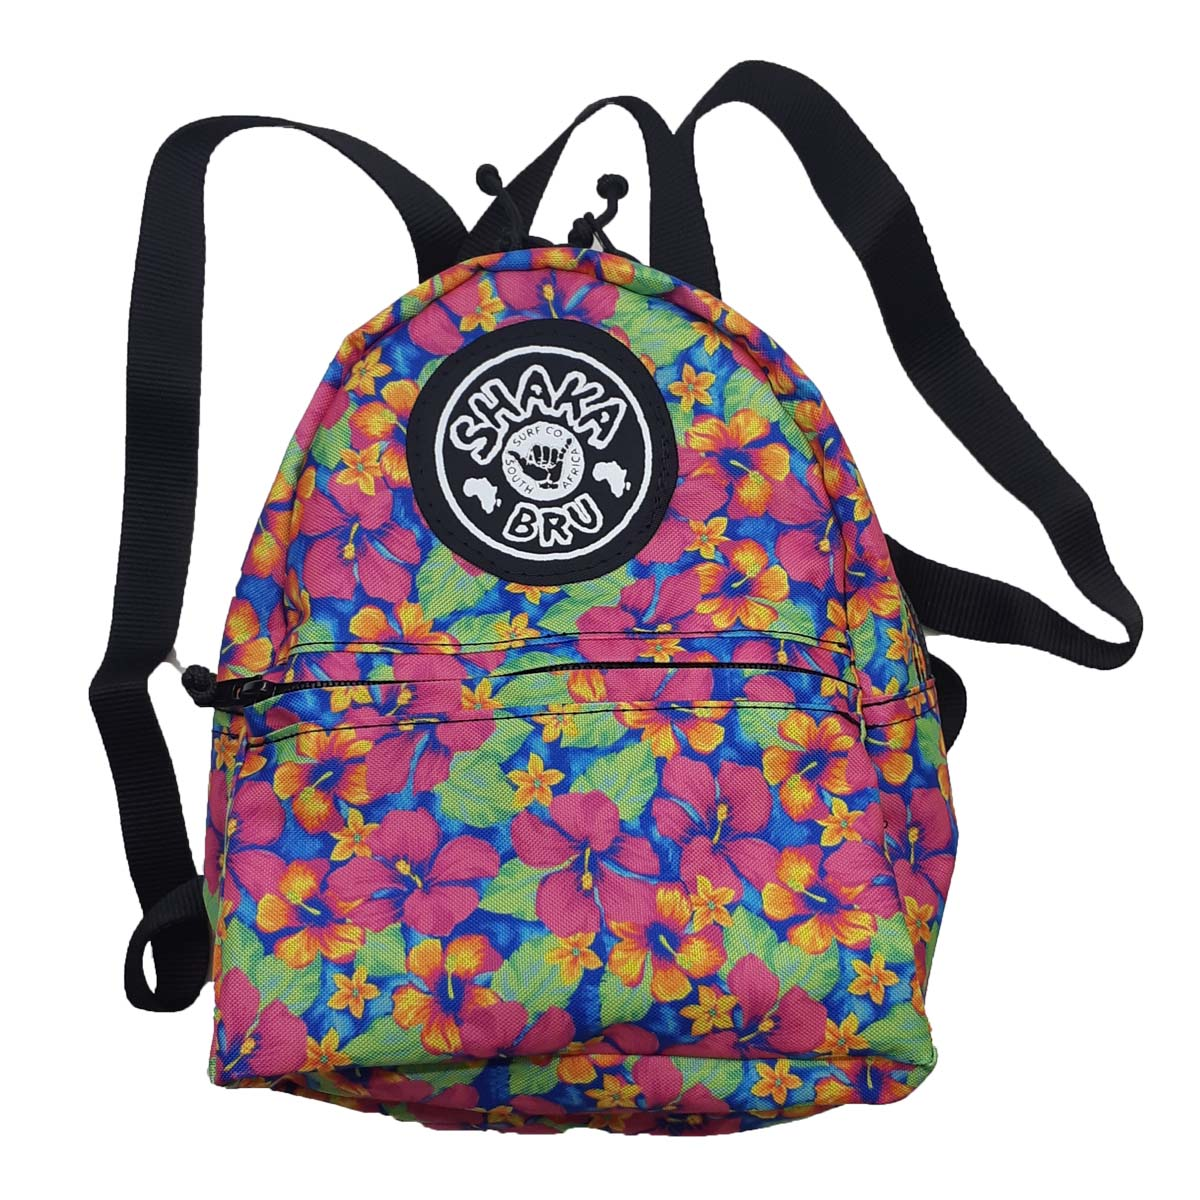 Shaka Bru Ladies Mini Backpacks - Perfect for cruizing to the beach or on the jawl at a club.